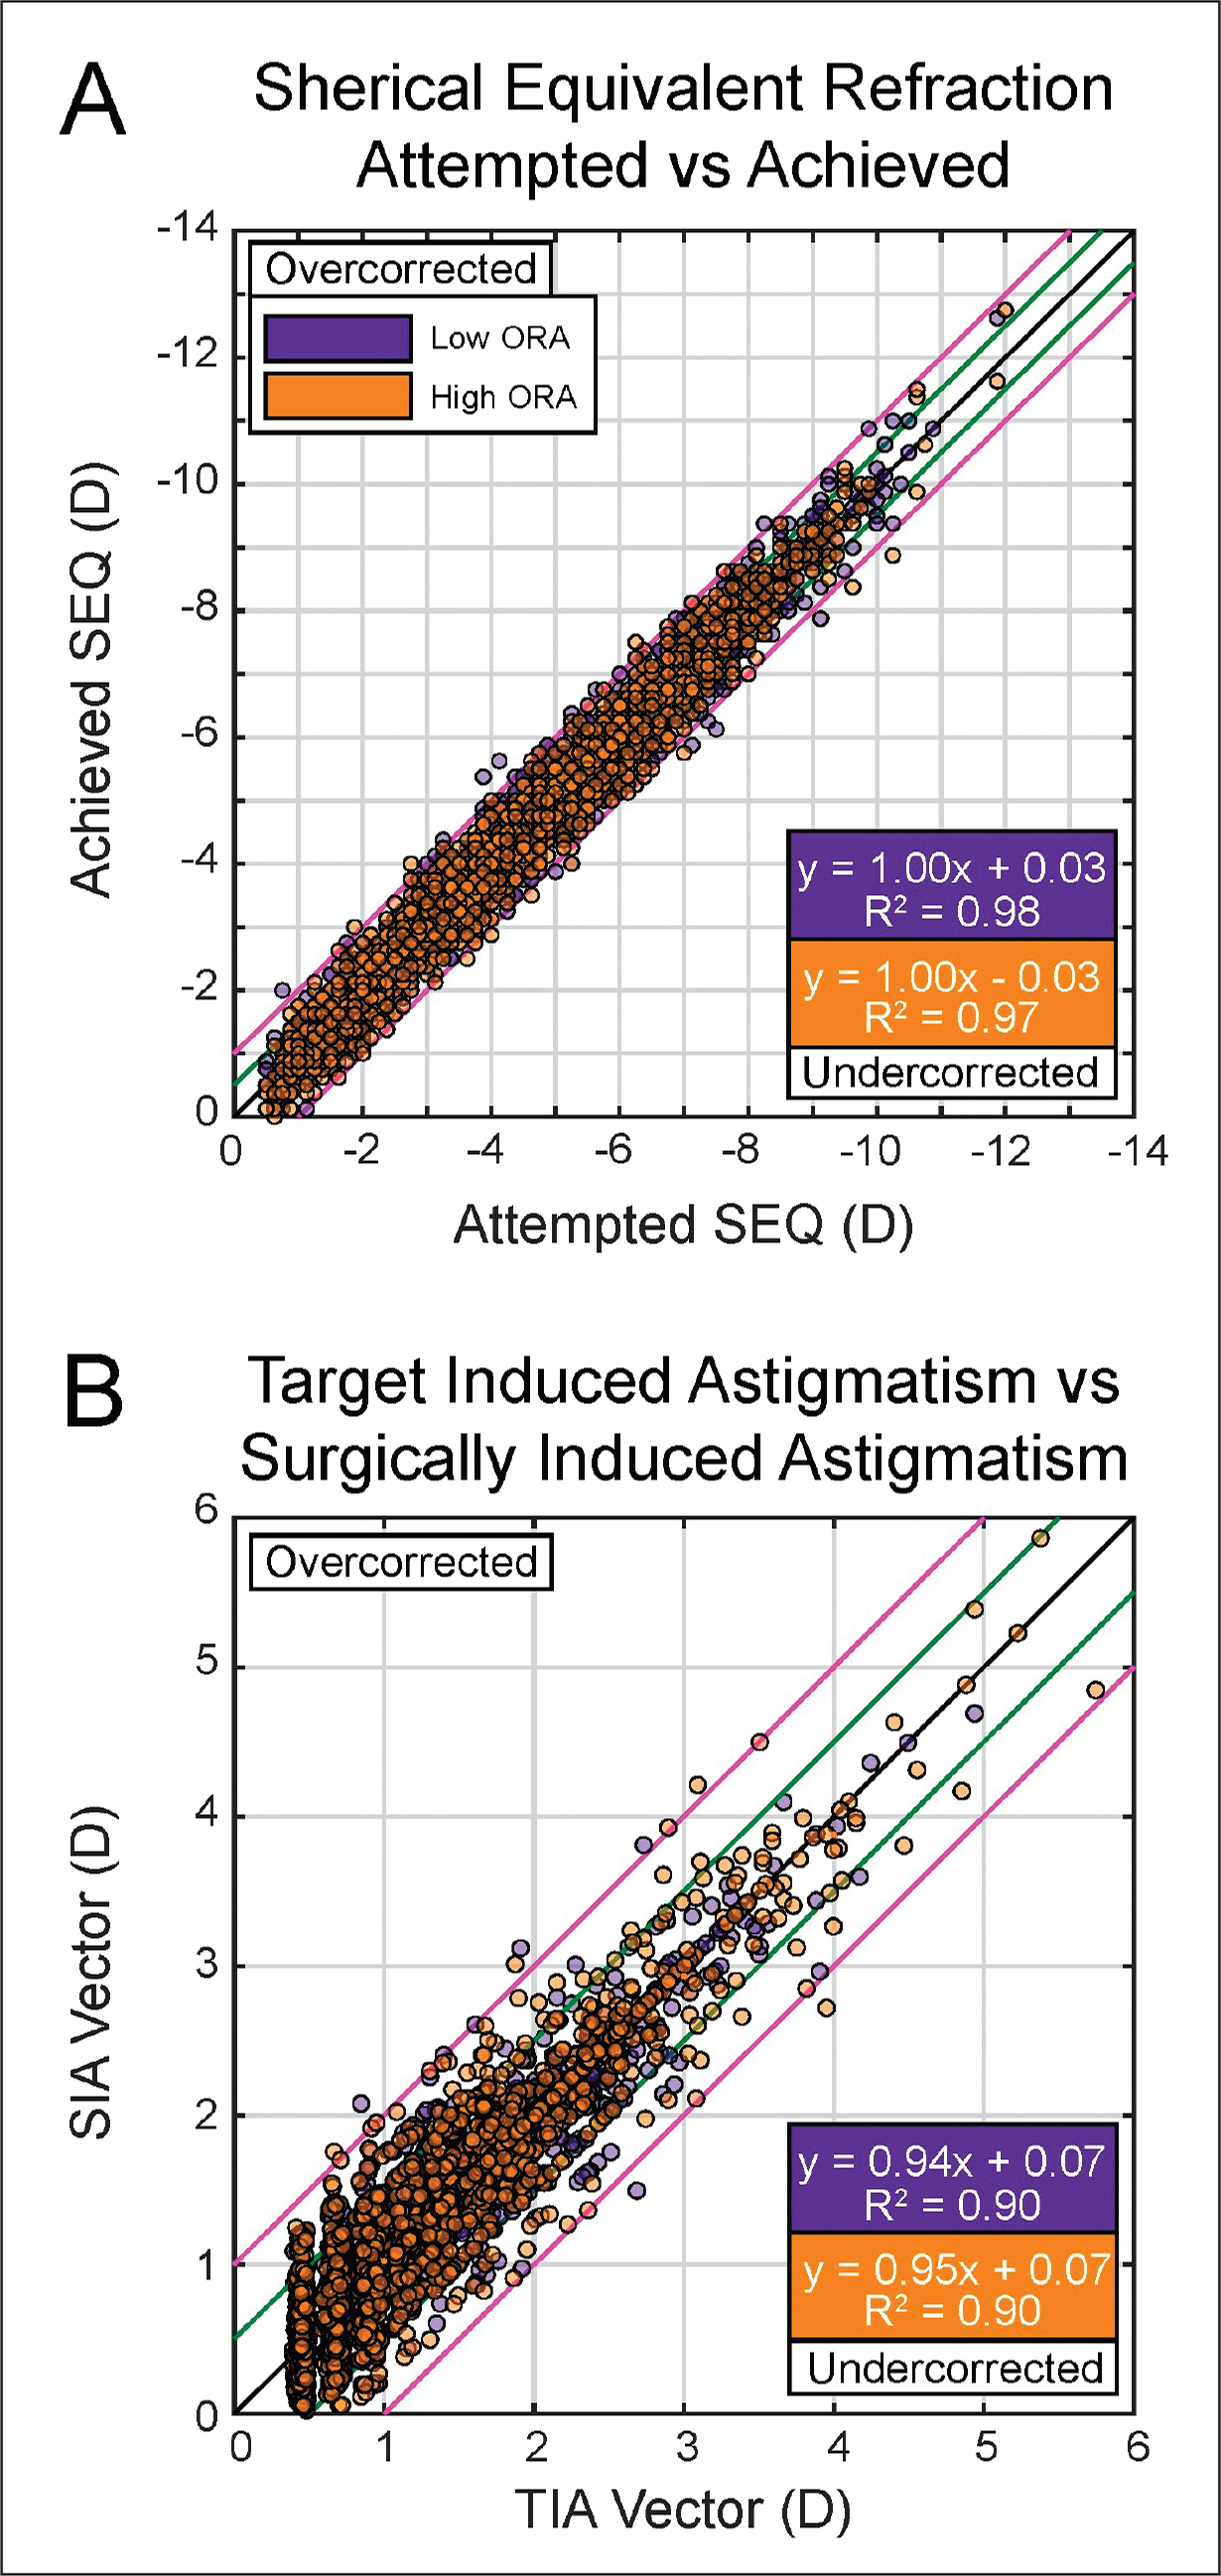 (A) Attempted spherical equivalent (SEQ) before surgery vs achieved SEQ after surgery in the low and high ocular residual astigmatism (ORA) groups (purple and orange data-points, respectively). Black line indicates attempted = achieved, green lines indicate ±0.50 diopters (D), and pink lines indicate ±1.00 D. (B) Target induced astigmatism (TIA) vector versus surgically induced astigmatism (SIA) vector in the low and high ORA groups (purple and orange data-points, respectively). Black line indicates TIA = SIA, green lines indicate ±0.50 D, pink lines indicate ±1.00 D. LASIK = laser in situ keratomileusis